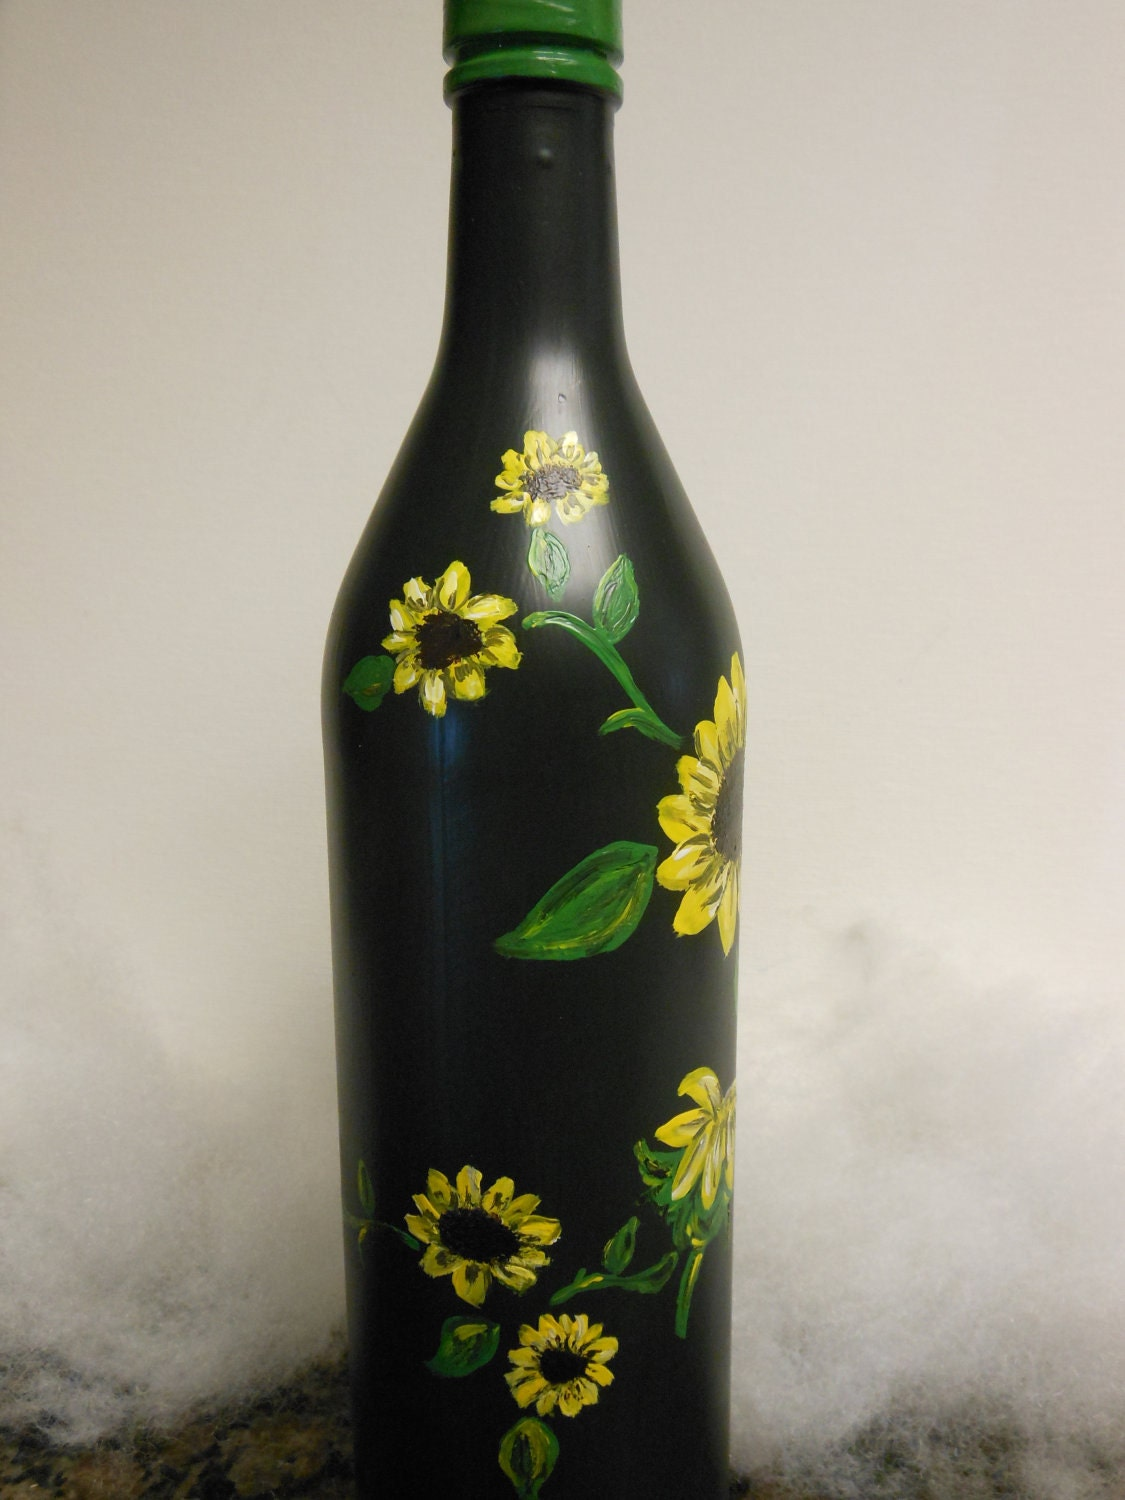 Pin wine bottles oil painting tidebuycom on pinterest for Painting of a wine bottle